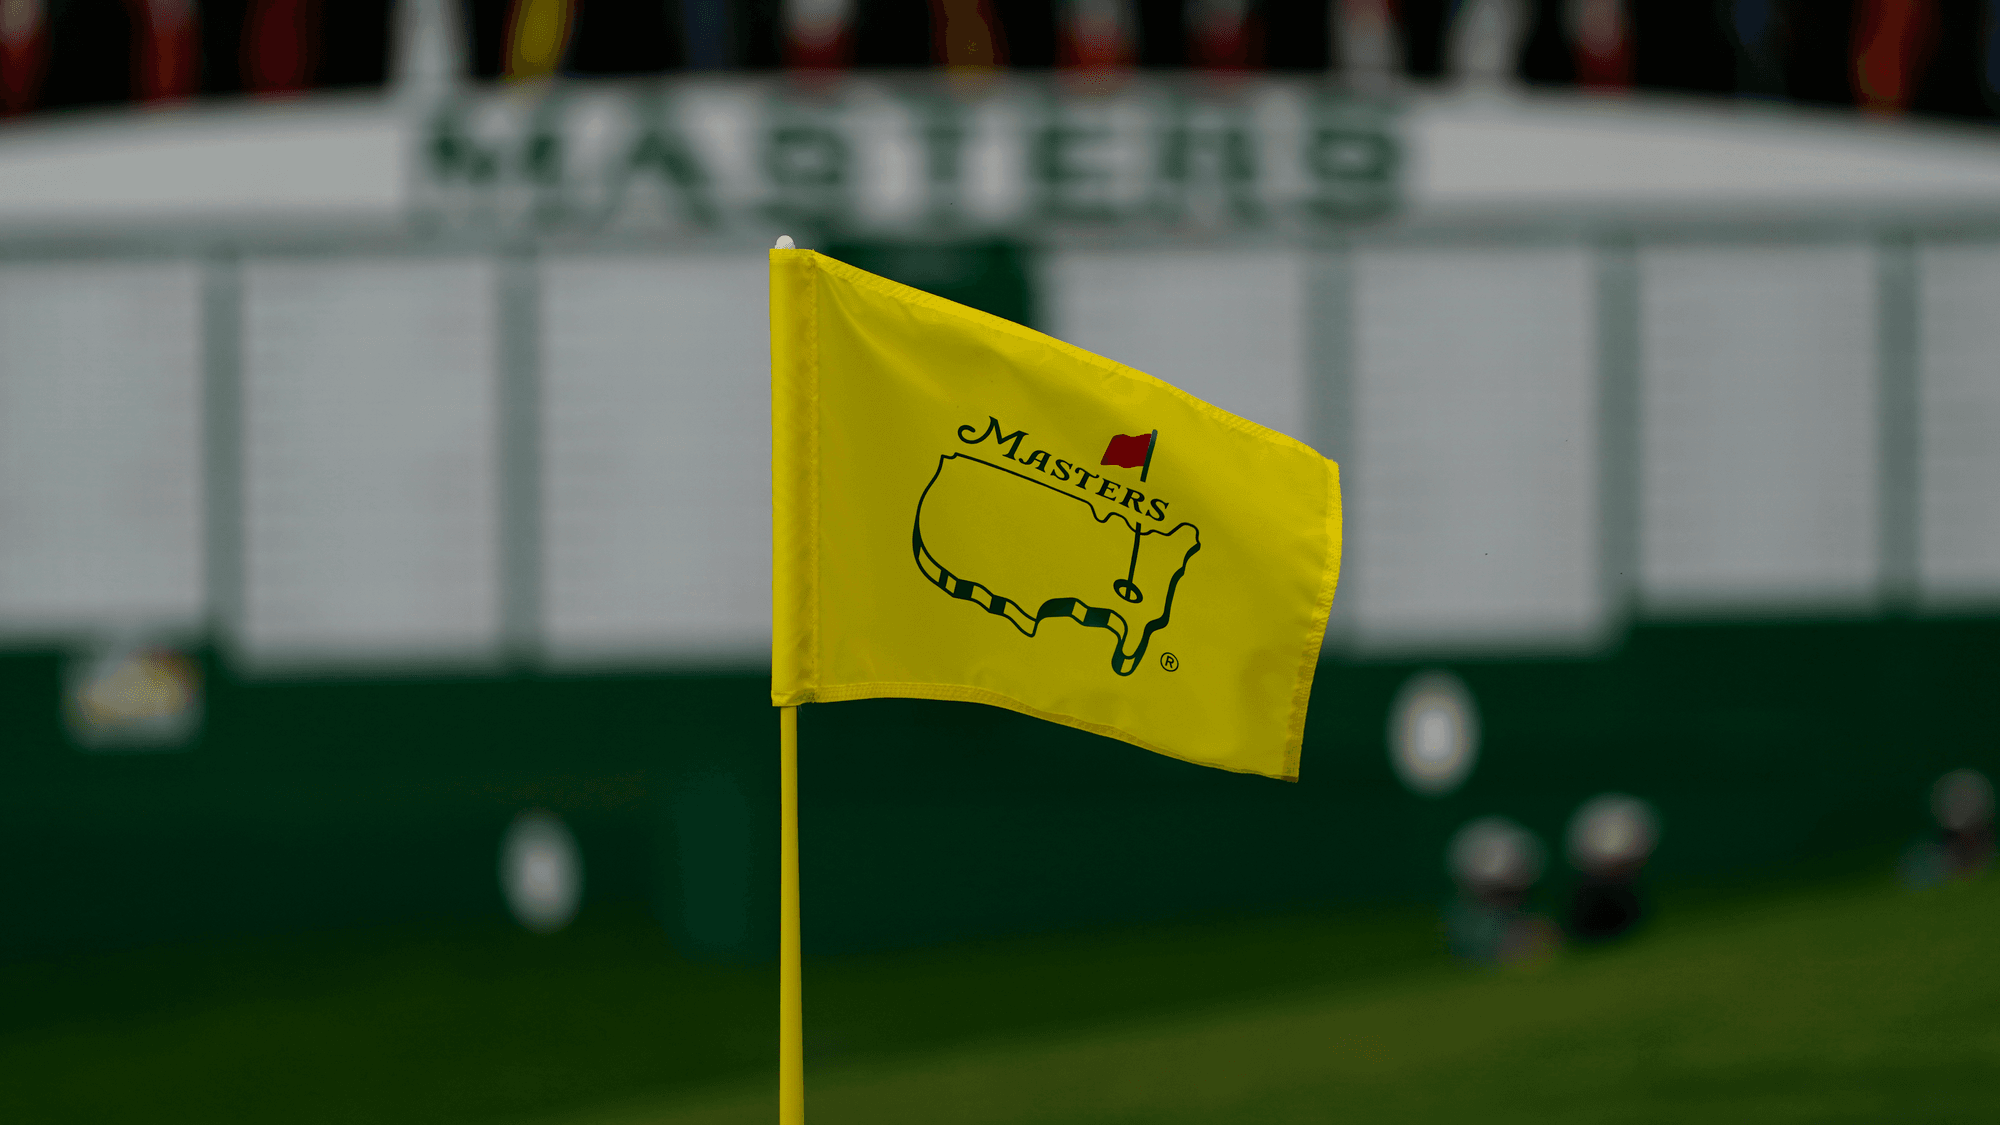 Augusta National Golf Masters flag pin on the ninth green during a practice round for the Masters golf tournament Wednesday, Nov. 11, 2020, in Augusta, Ga. (AP Photo/Matt Slocum)